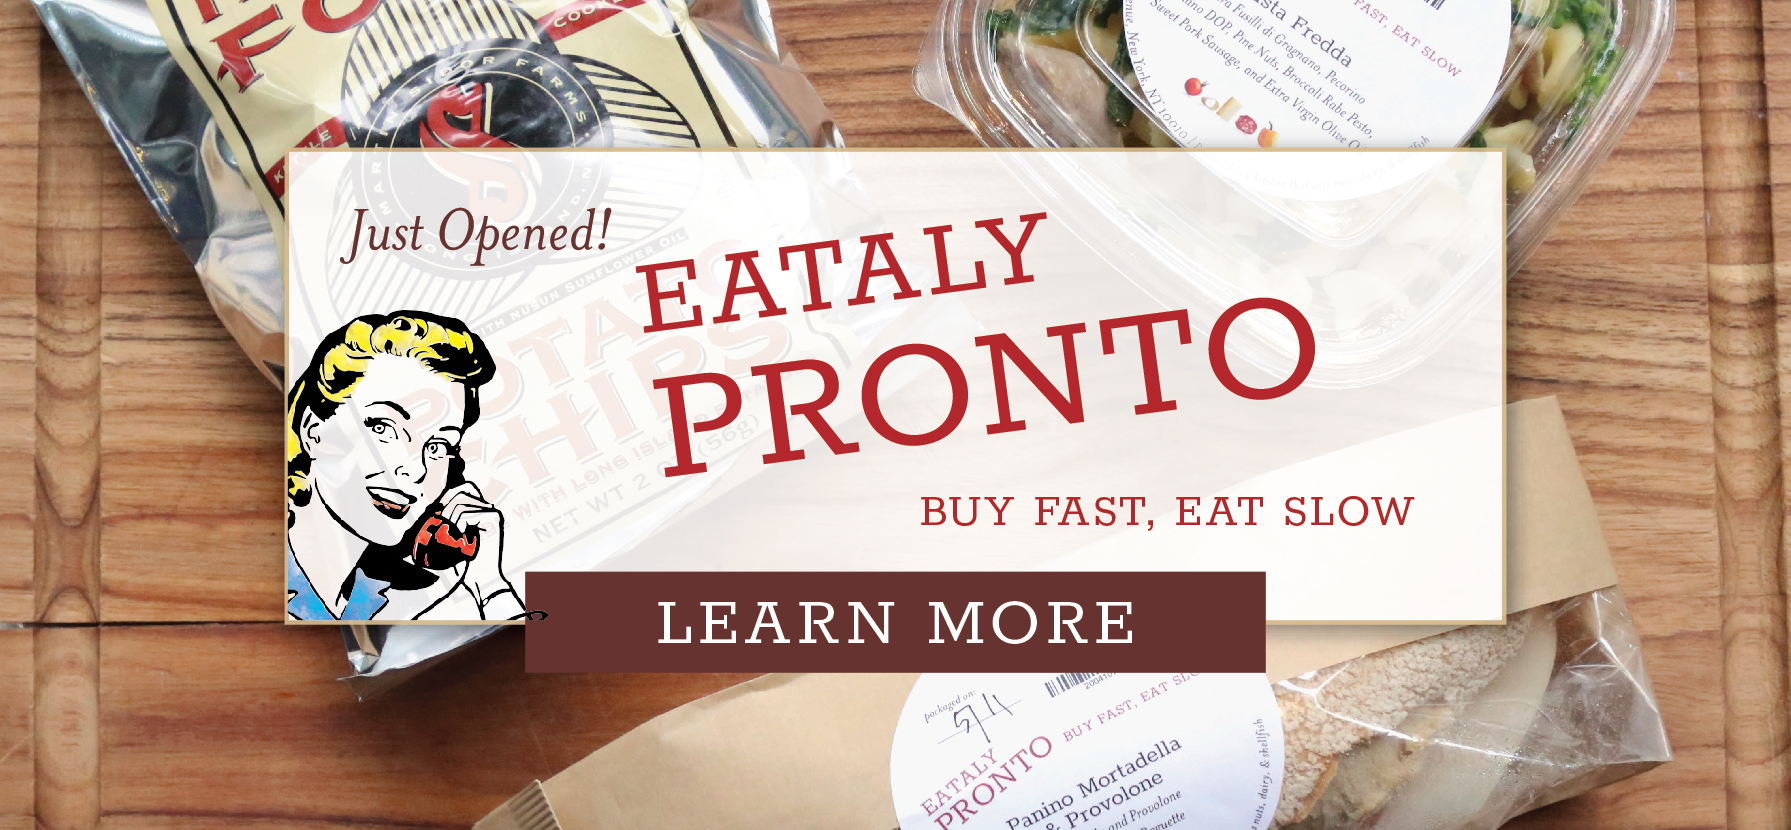 Buy Fast & Eat Slow at Pronto